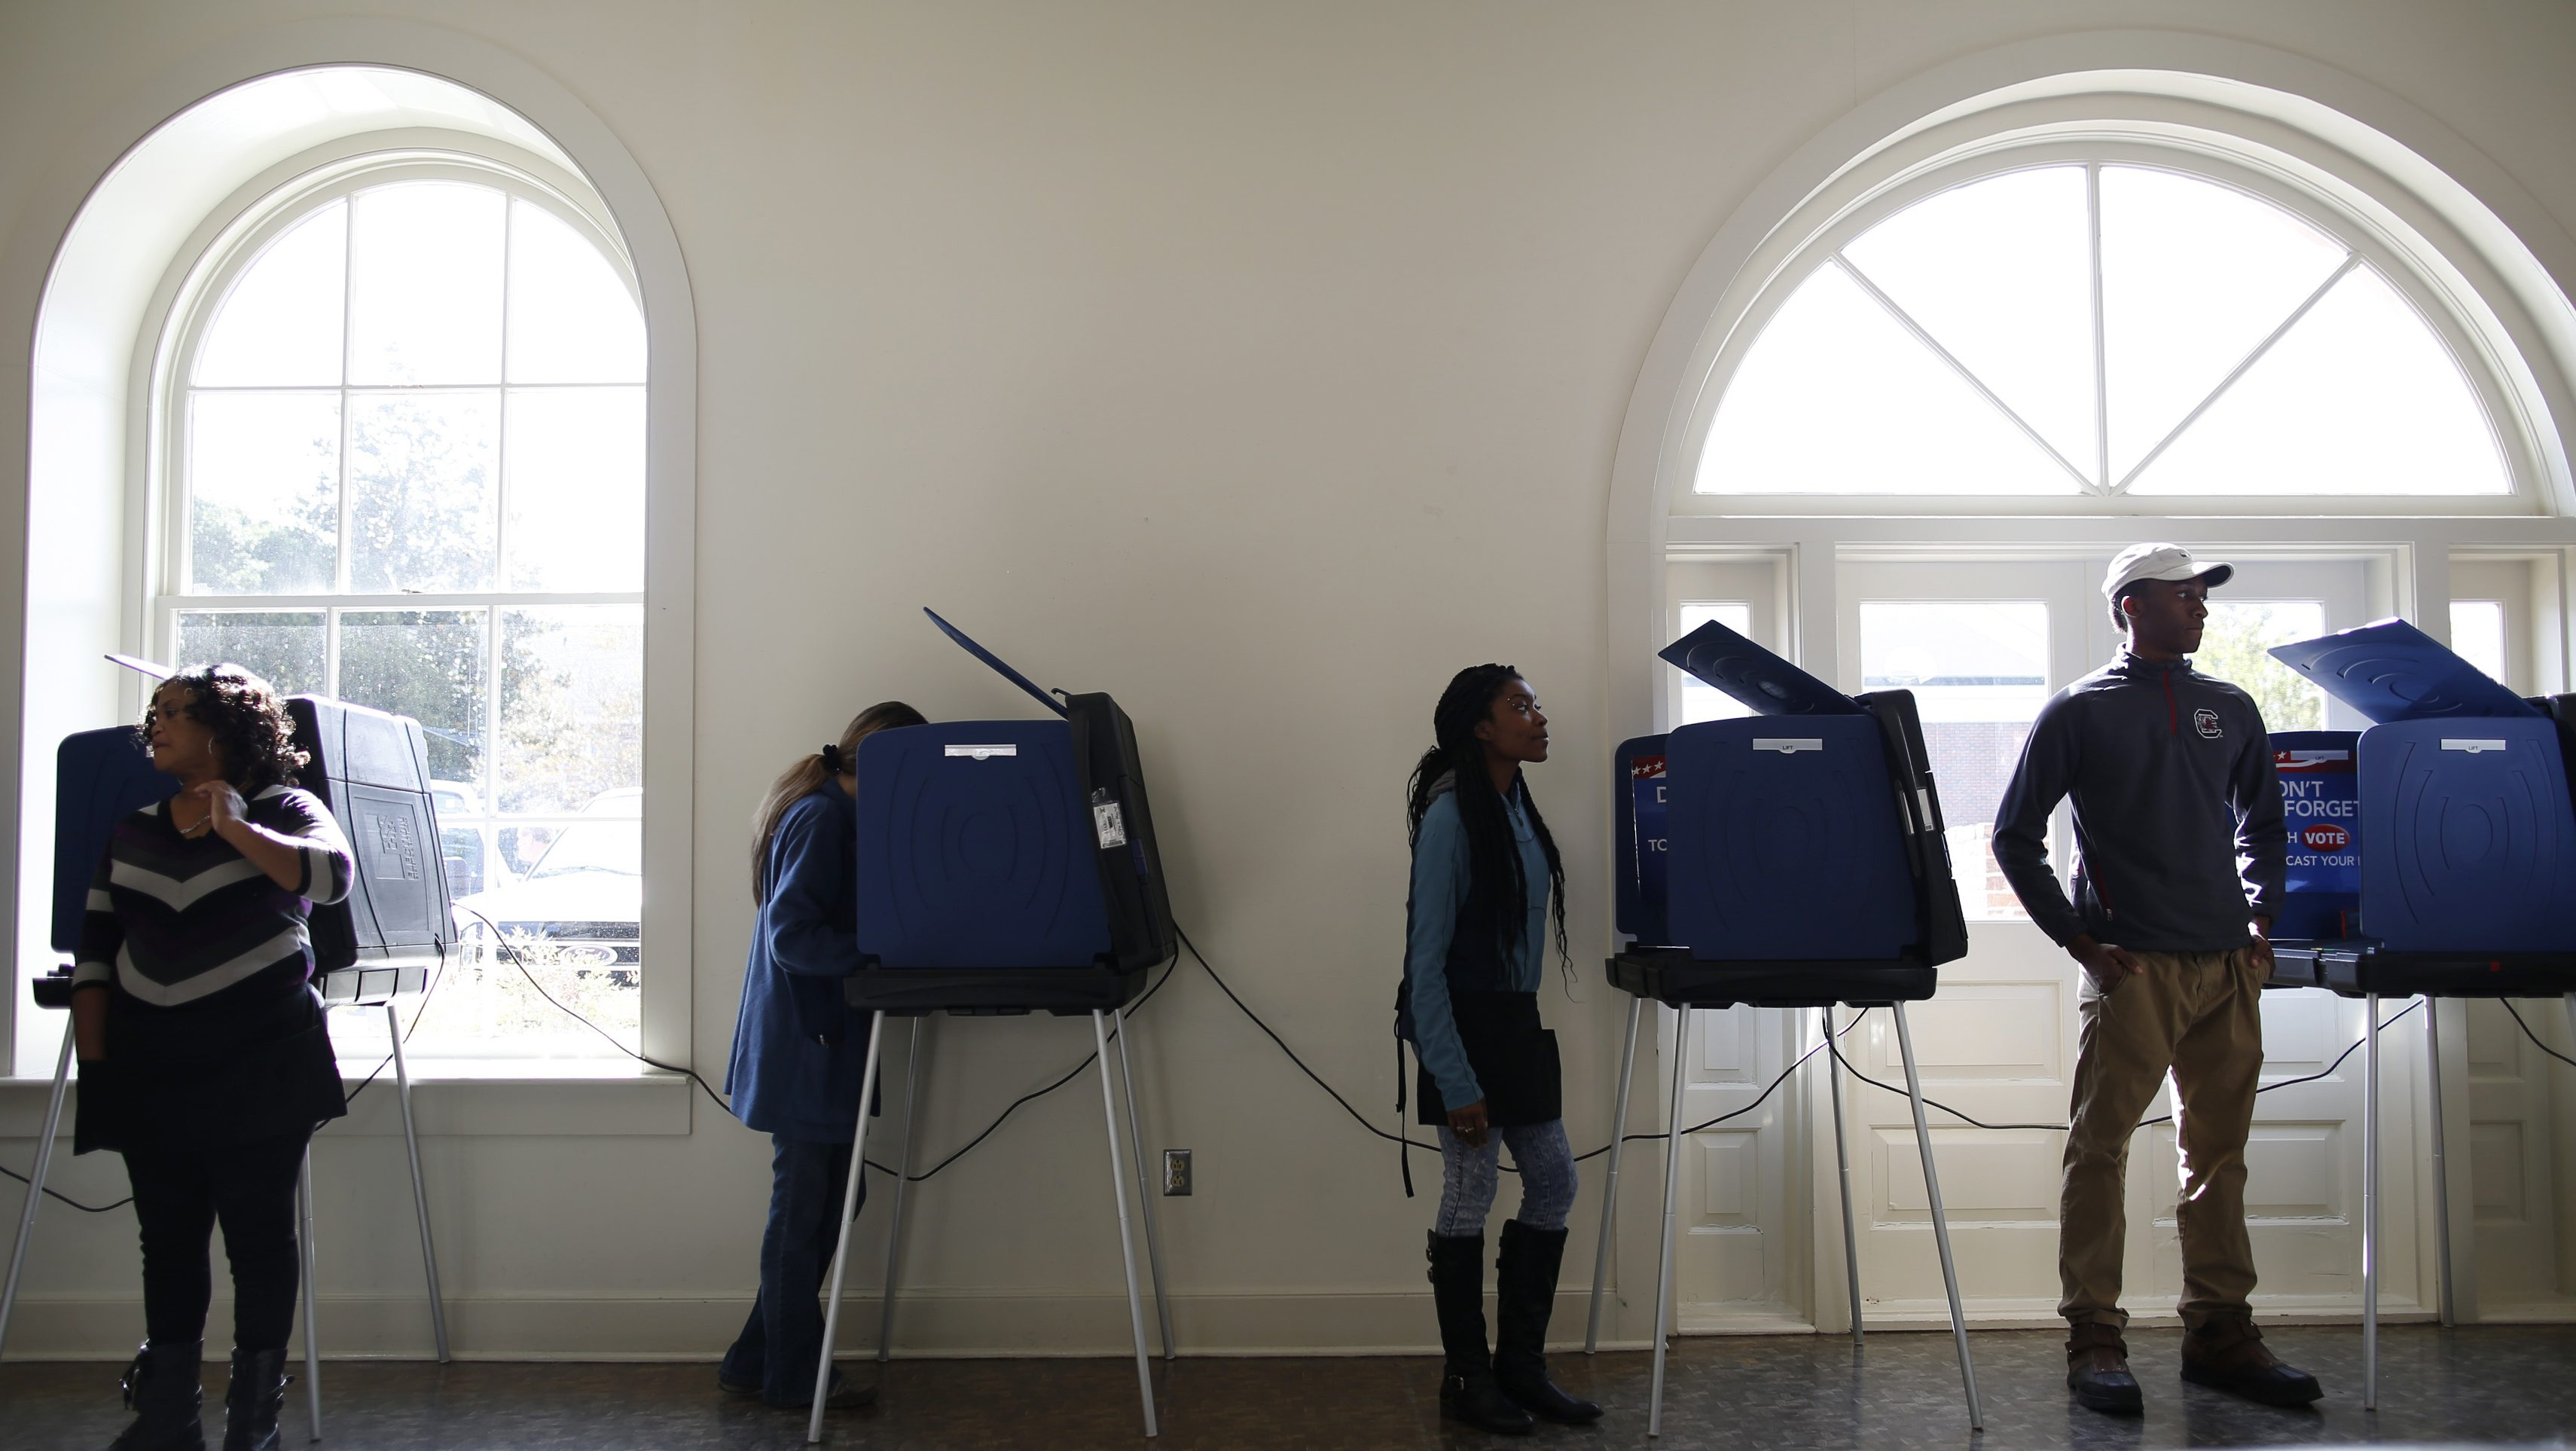 Poll workers and voters stand by the voting machines at the Marion 2 precinct at the Marion Opera House during the U.S. presidential election in Marion, South Carolina, U.S. November 8, 2016. REUTERS/Randall Hill - RTX2SKQK